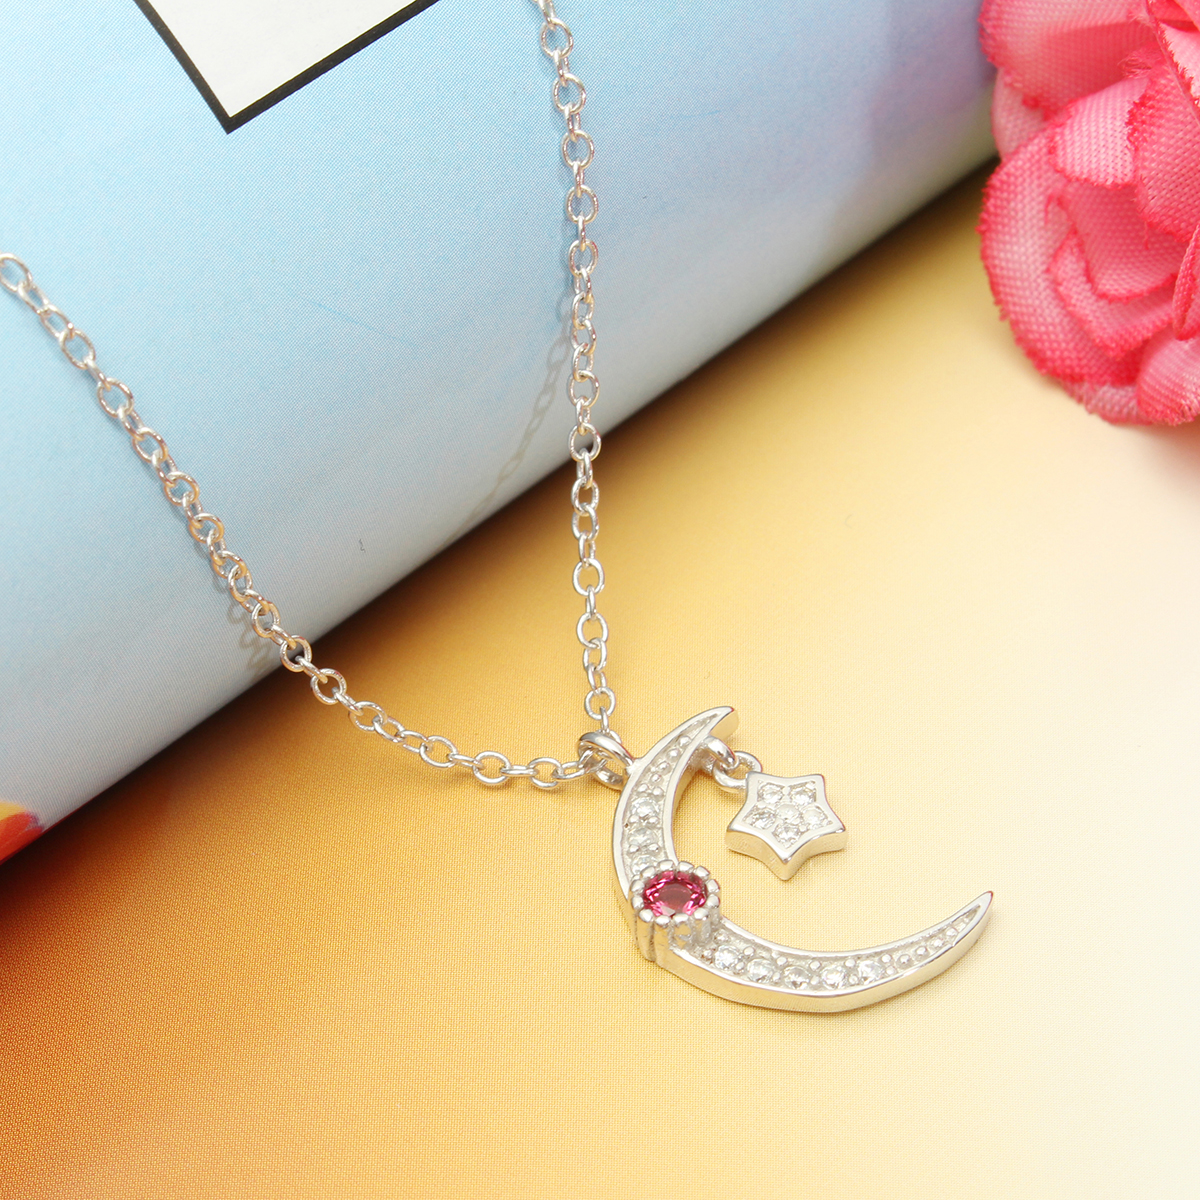 Vintage Necklace Rhinestone Crystal Alloy Star Moon Necklace